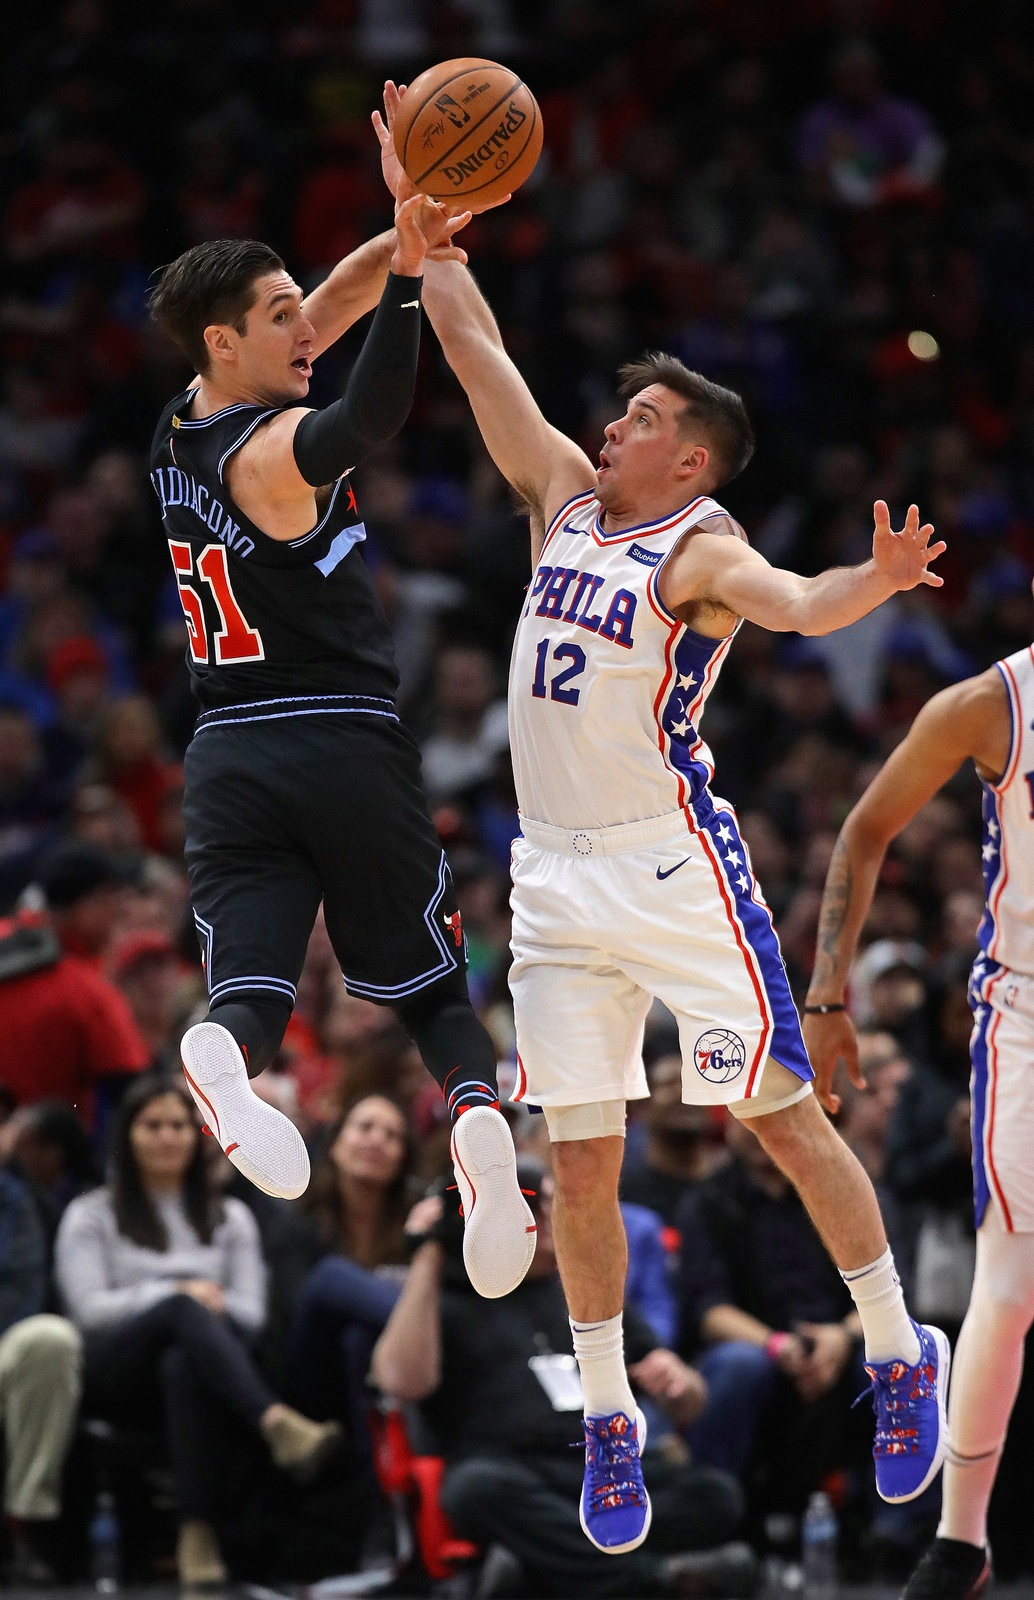 Ryan Arcidiacono #51 of the Chicago Bulls leaps to pass against T.J. McConnell #12 of the Philadelphia 76ers at the United Center on March 06, 2019 in Chicago, Illinois.